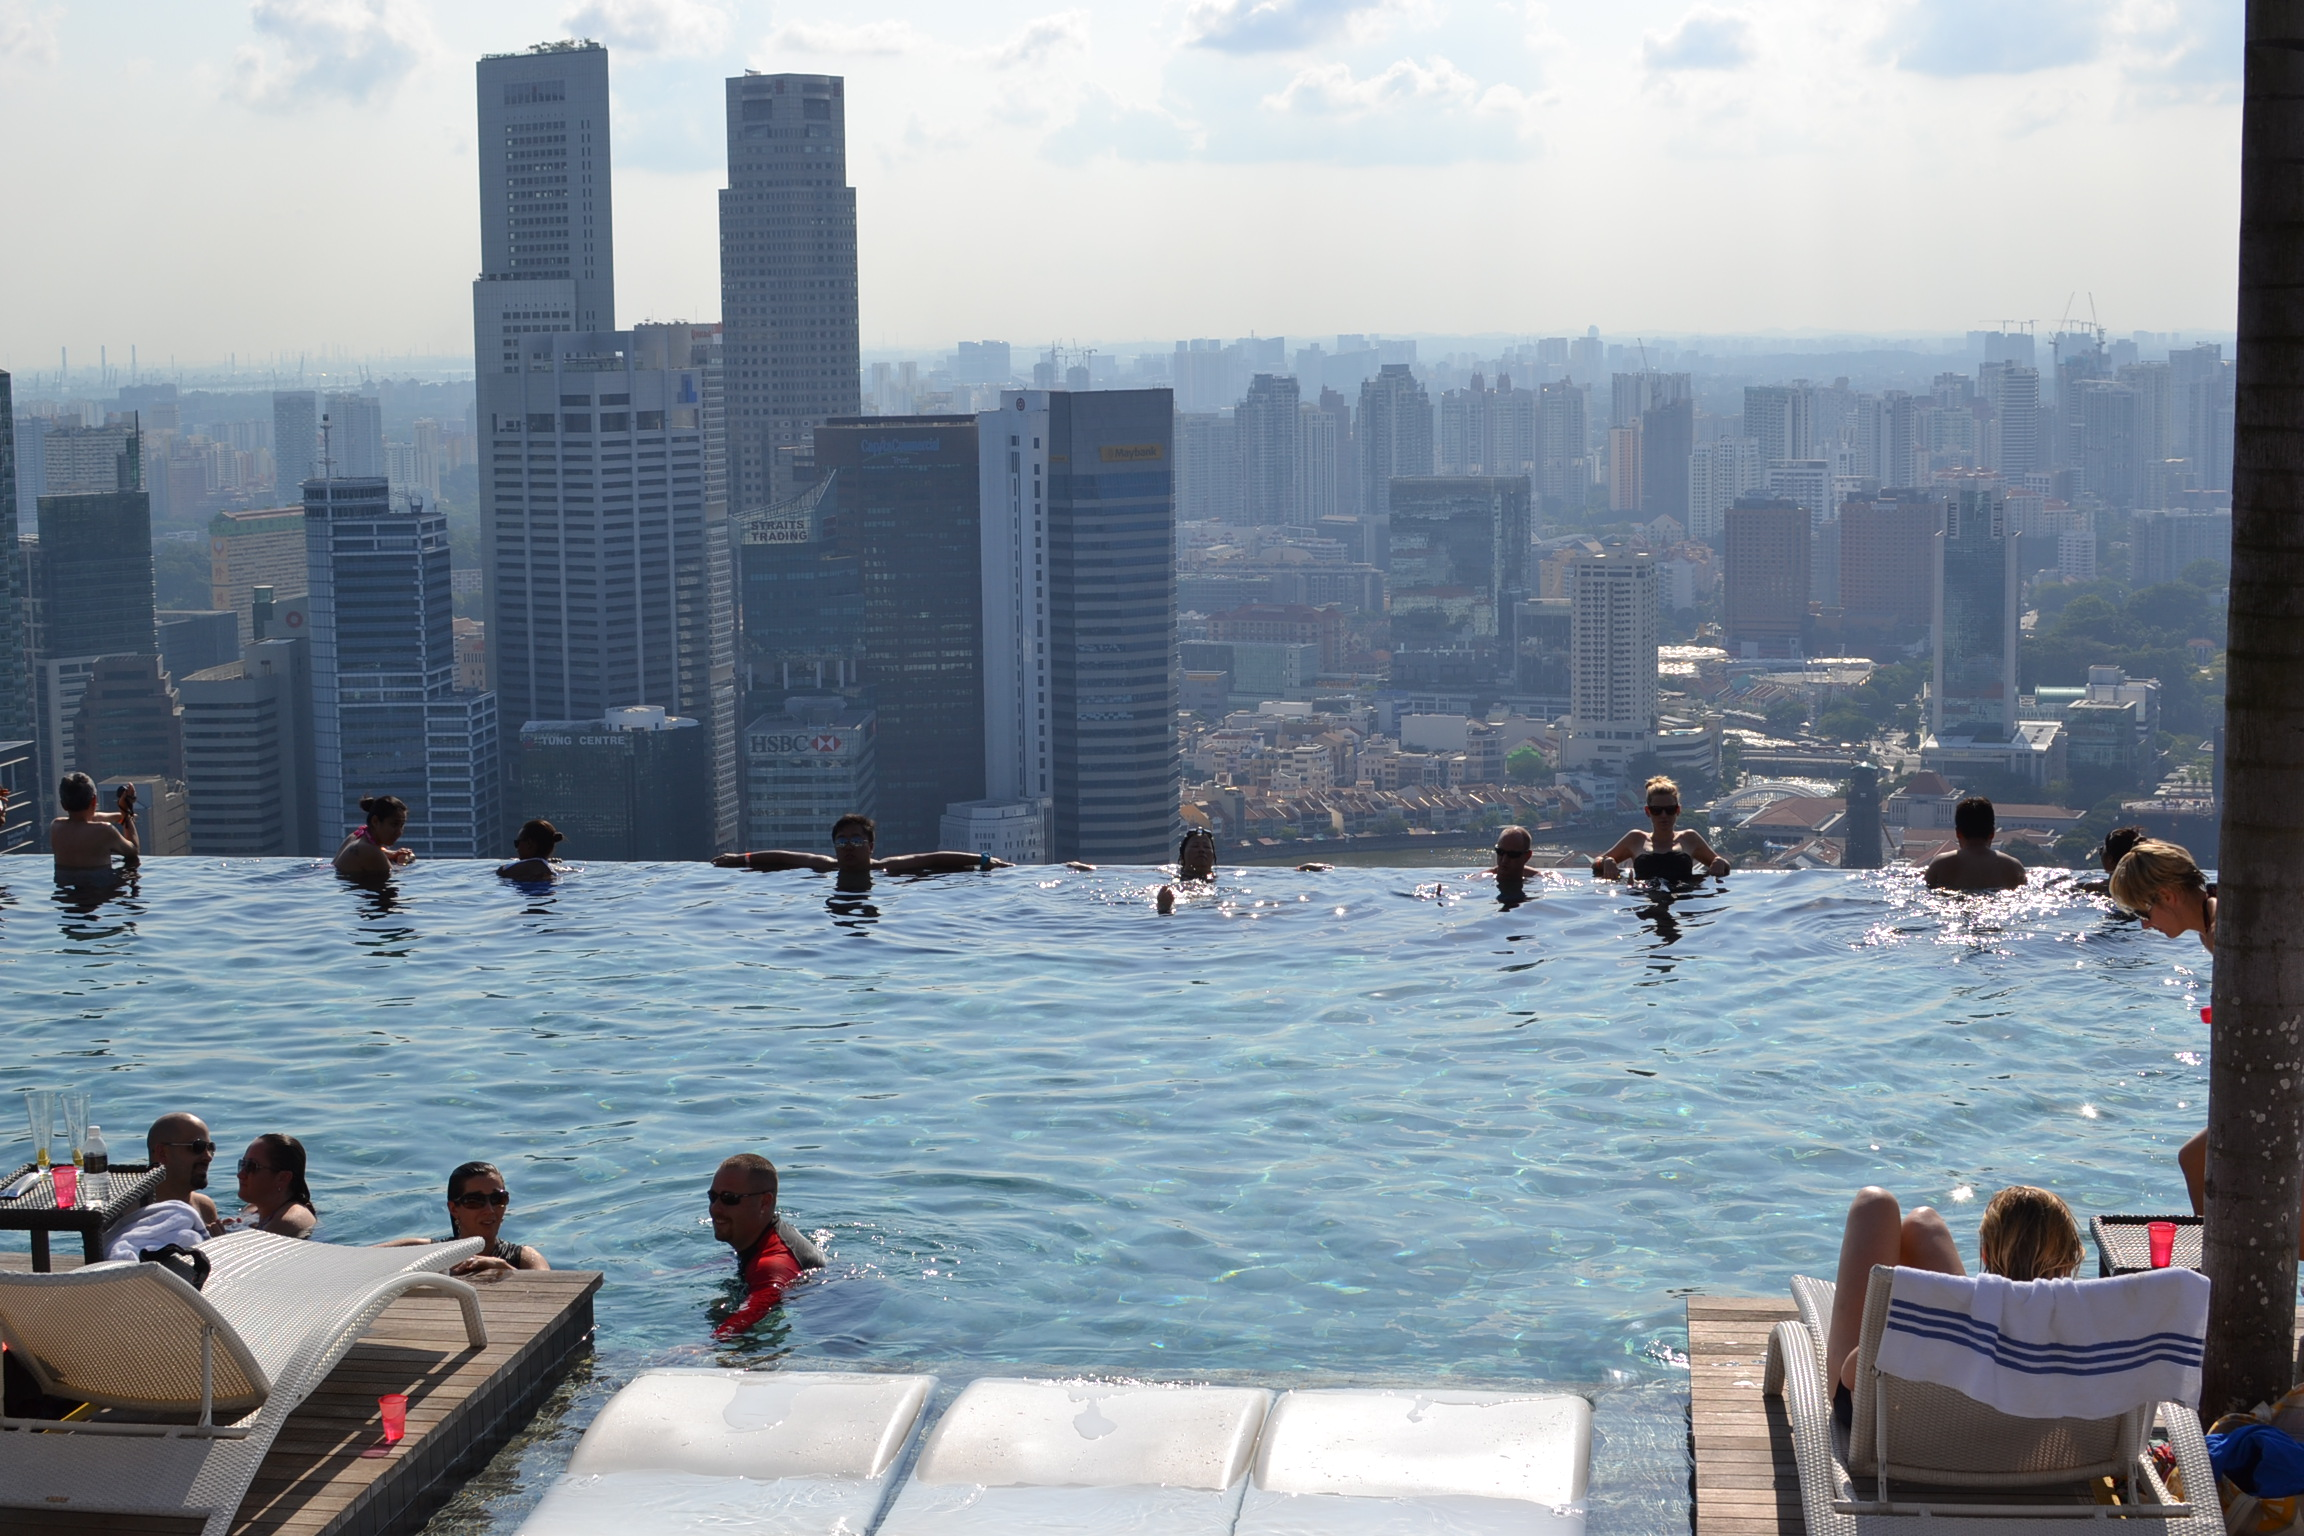 Marina bay sands skypark infinity pool escape with style - Marina bay sands resort singapore swimming pool ...